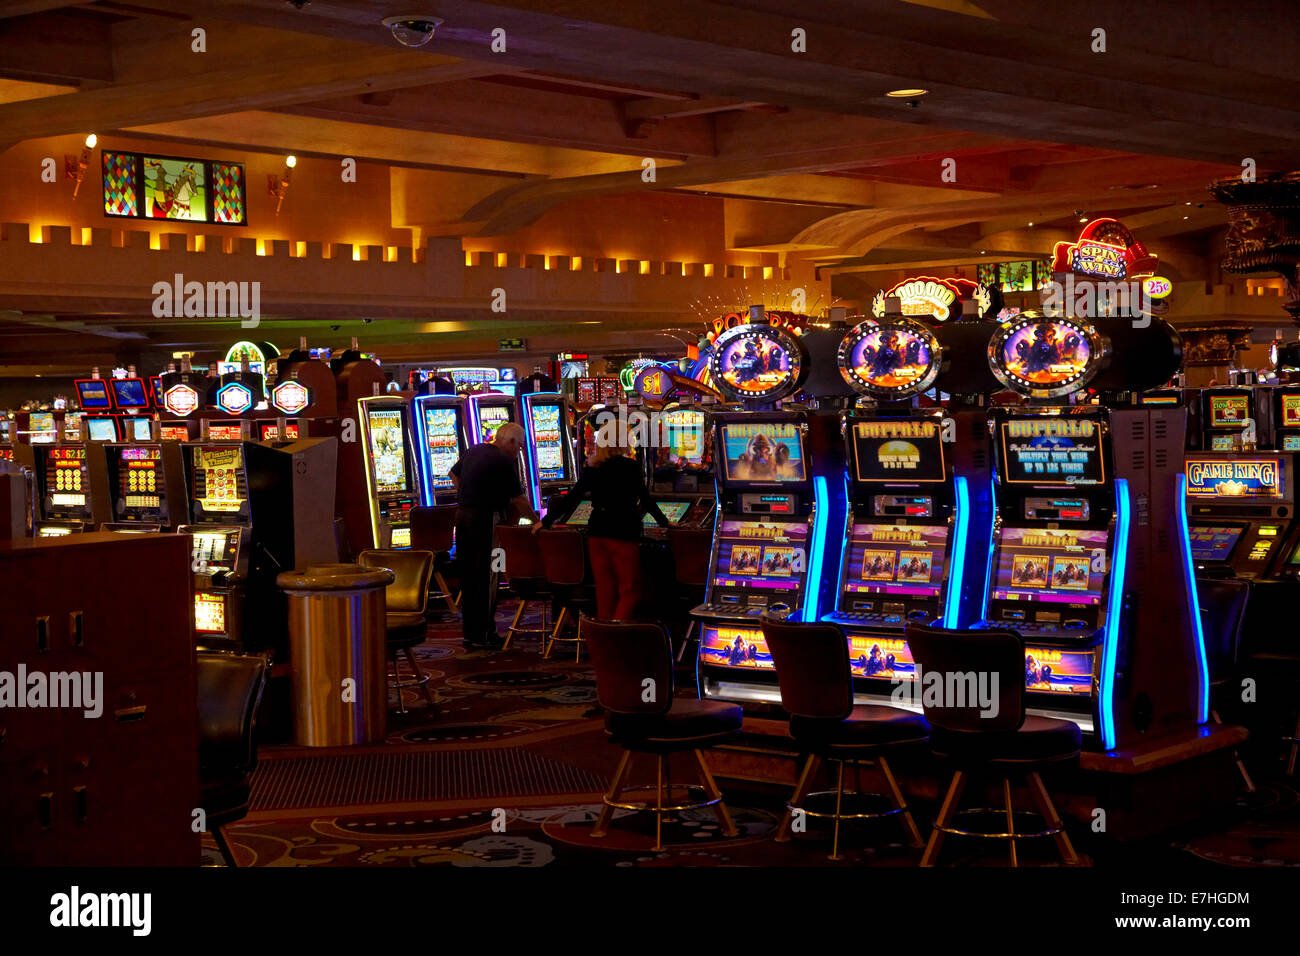 excalibur casino games